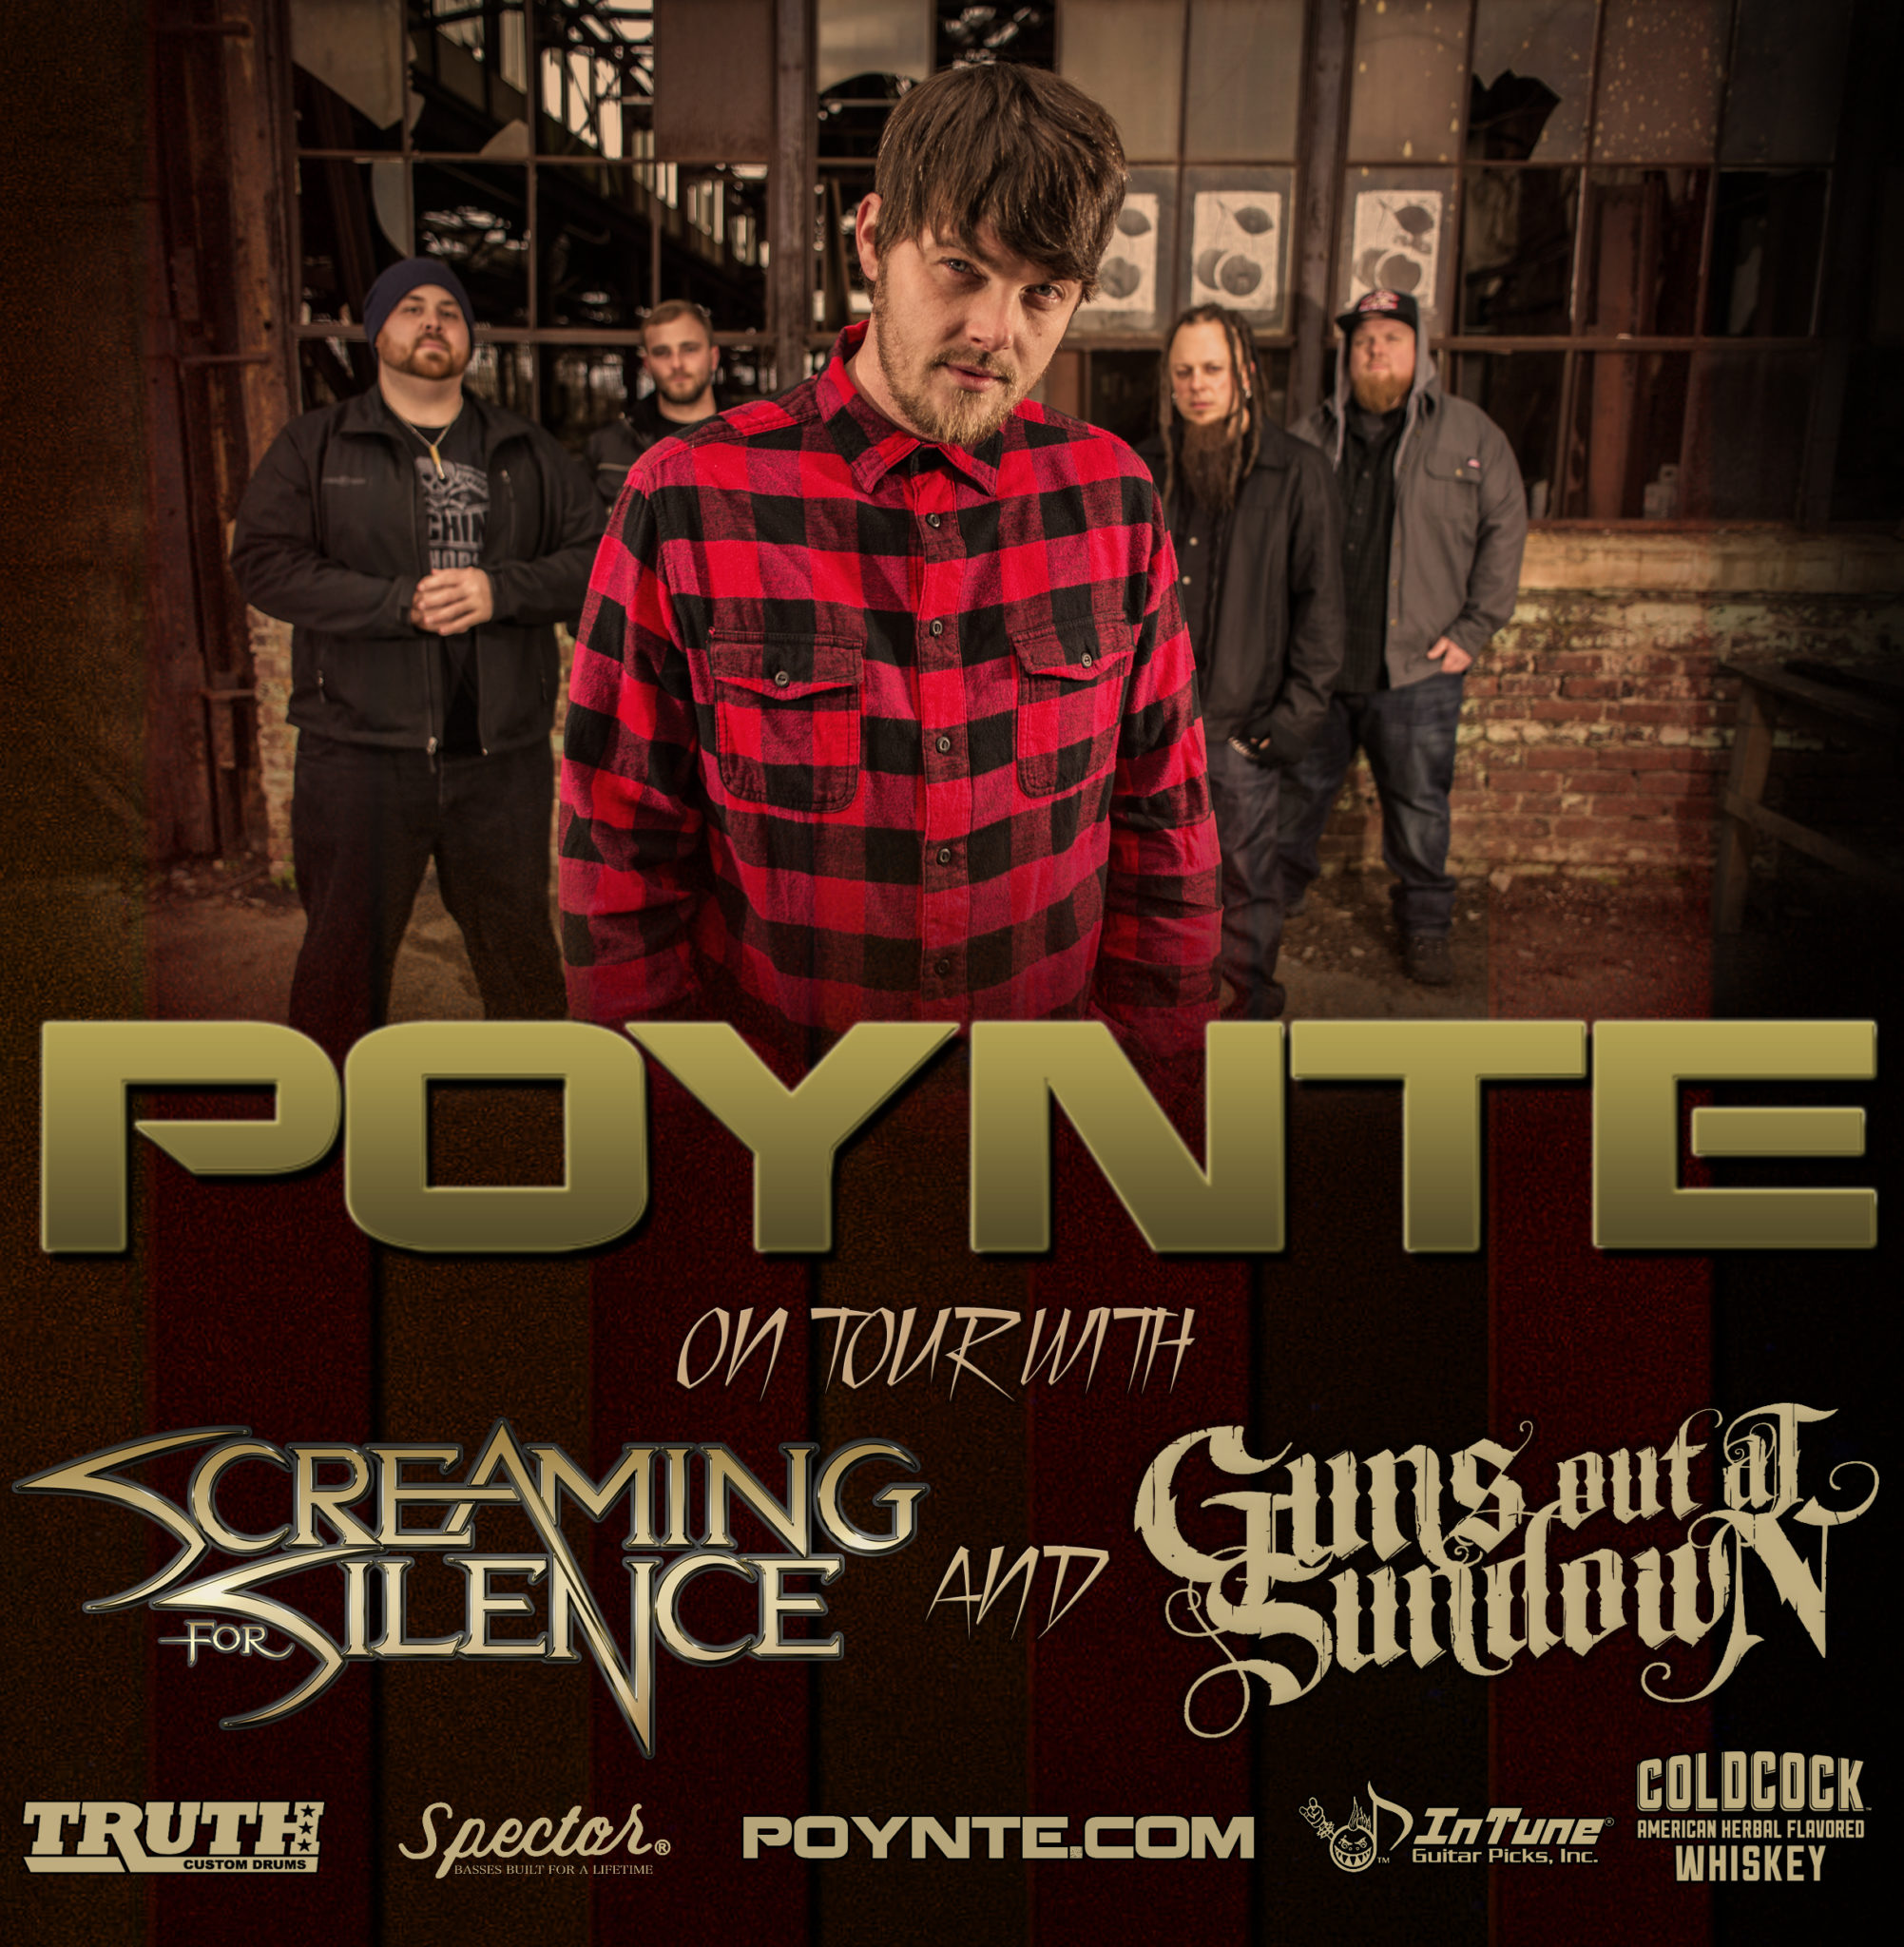 "POYNTE Announces Tour With Screaming For Silence and Guns Out At Sundown. Teases New Video For ""Take Control""."